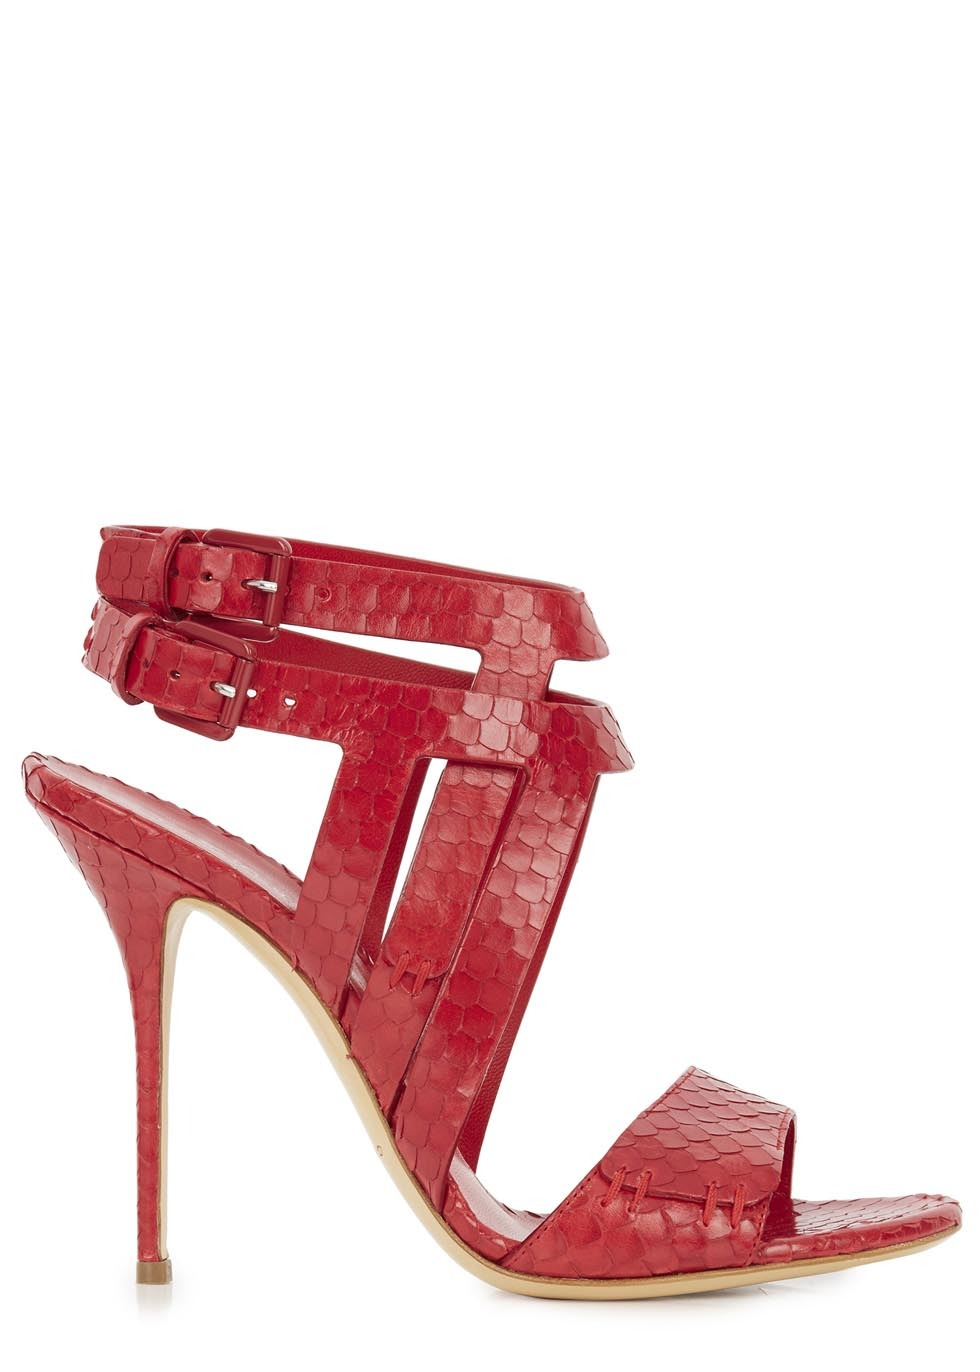 Red Python Effect Leather Sandals - occasions: evening, occasion; material: leather; heel height: high; ankle detail: ankle strap; heel: stiletto; toe: open toe/peeptoe; style: standard; finish: plain; pattern: animal print; predominant colour: raspberry; season: s/s 2014